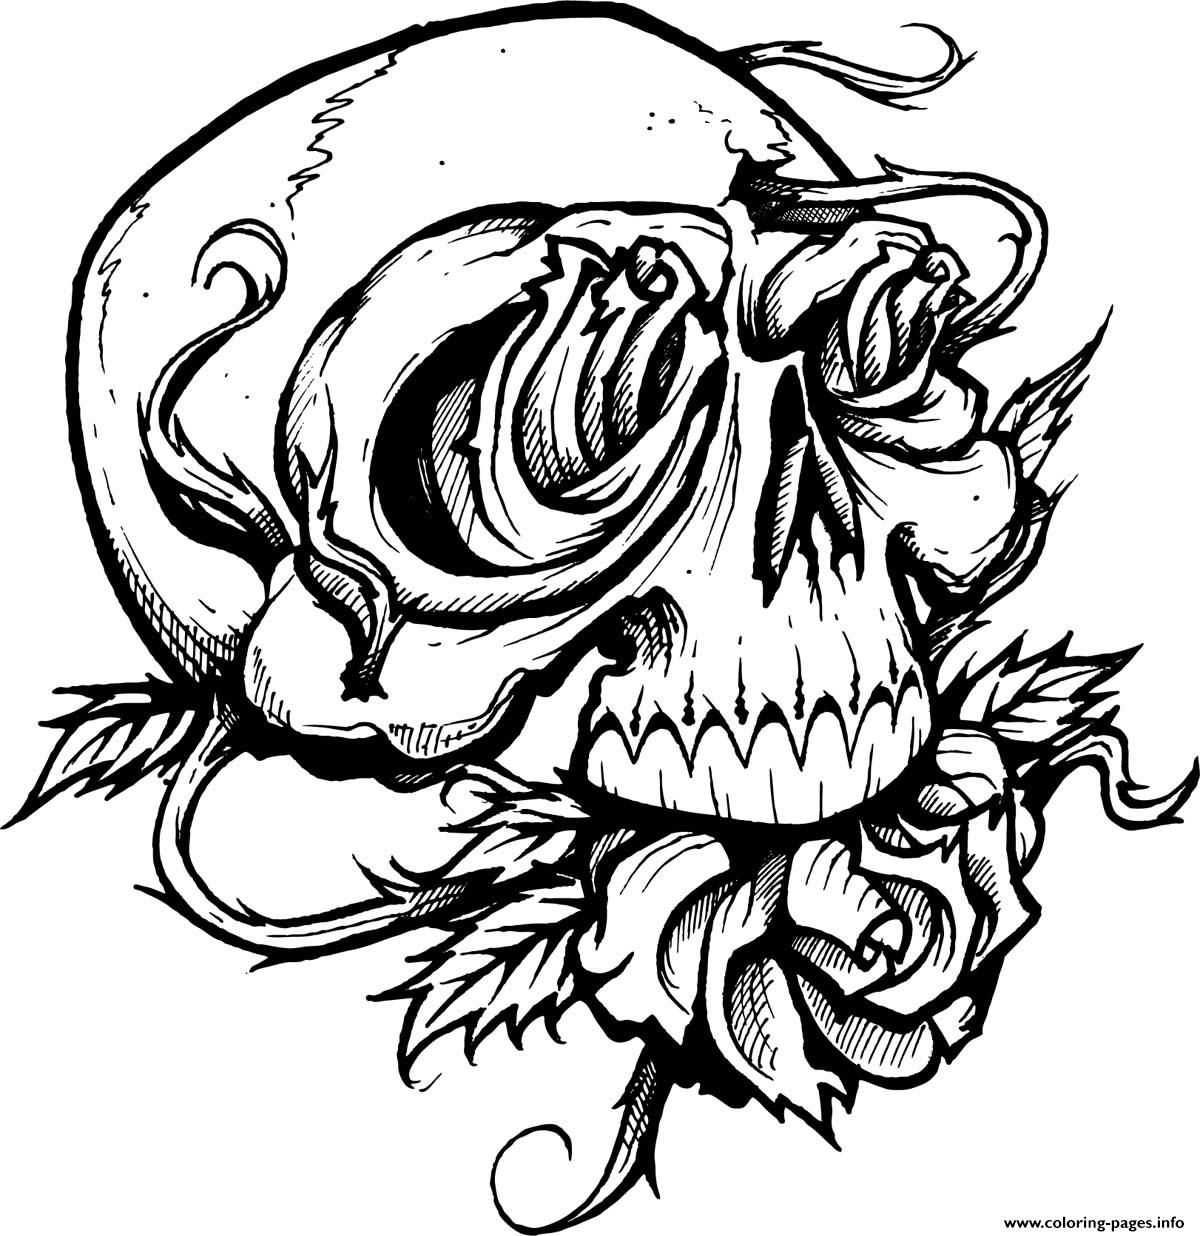 sugar skull with roses coloring pages printable and coloring book to print for free find more coloring pages online for kids and adults of sugar skull with